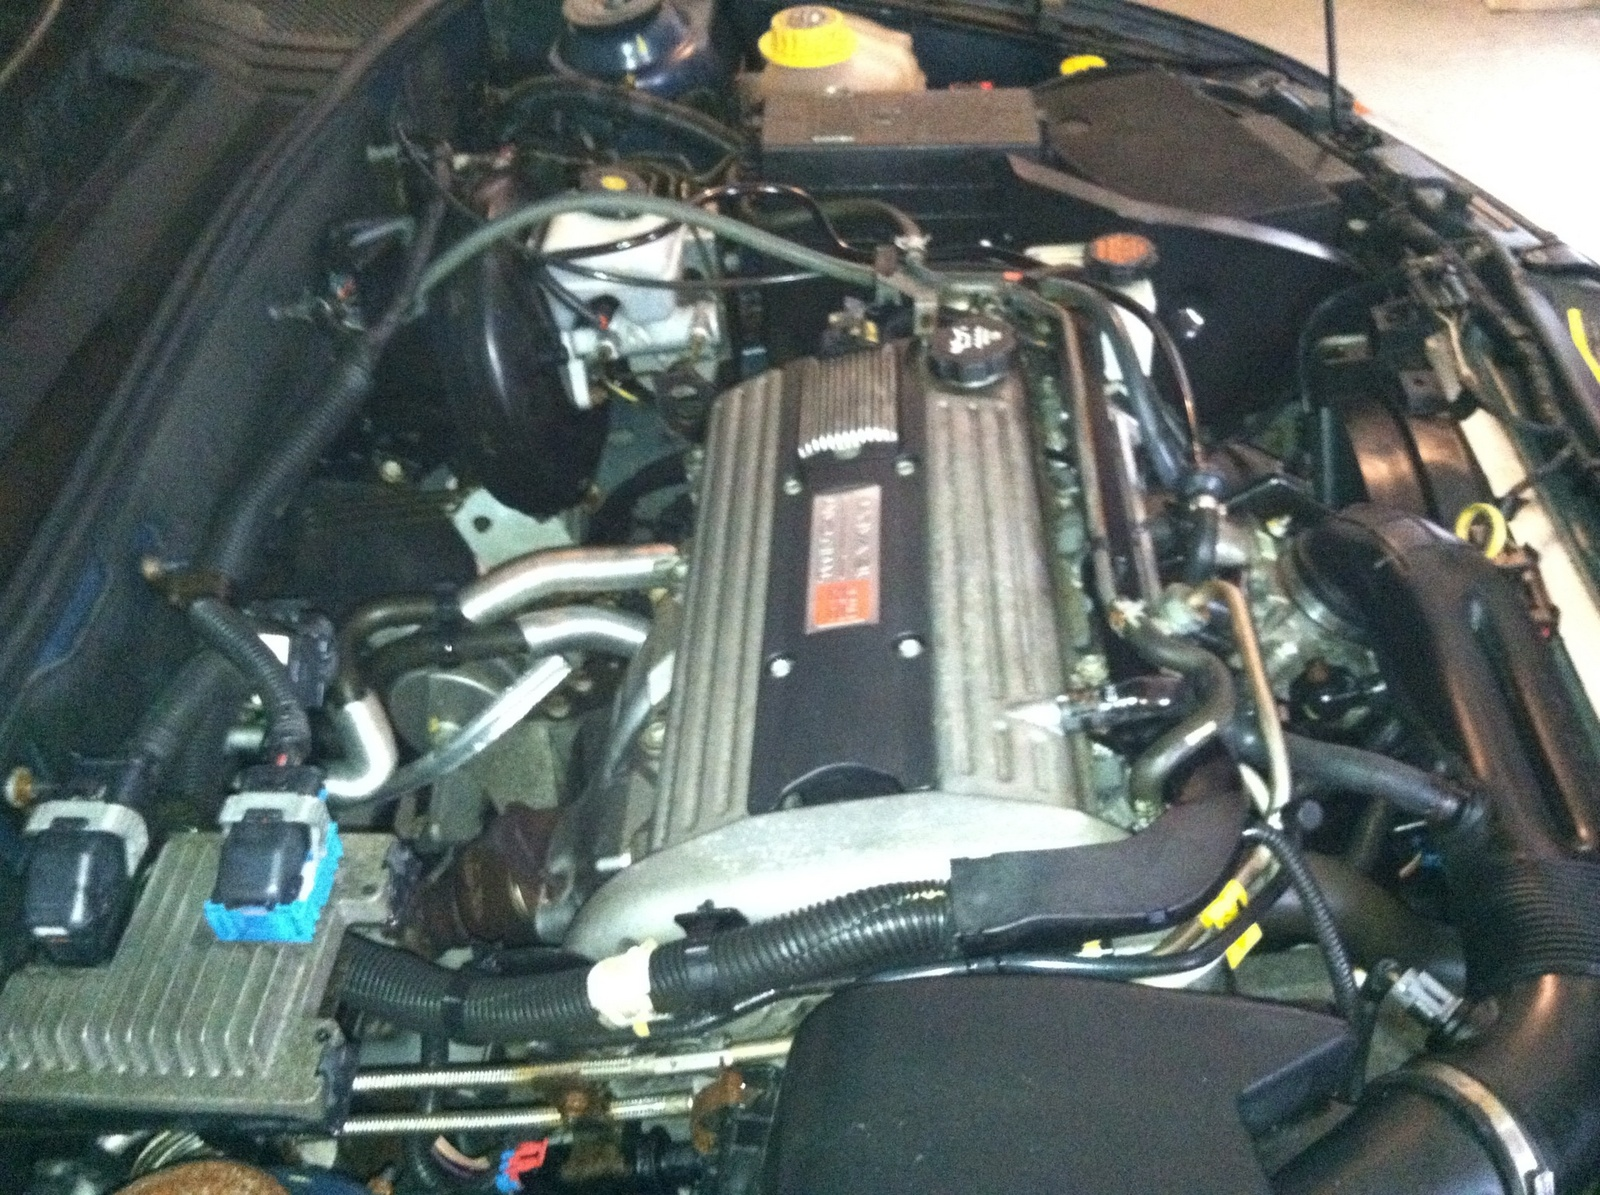 Saturn L-Series engine #4